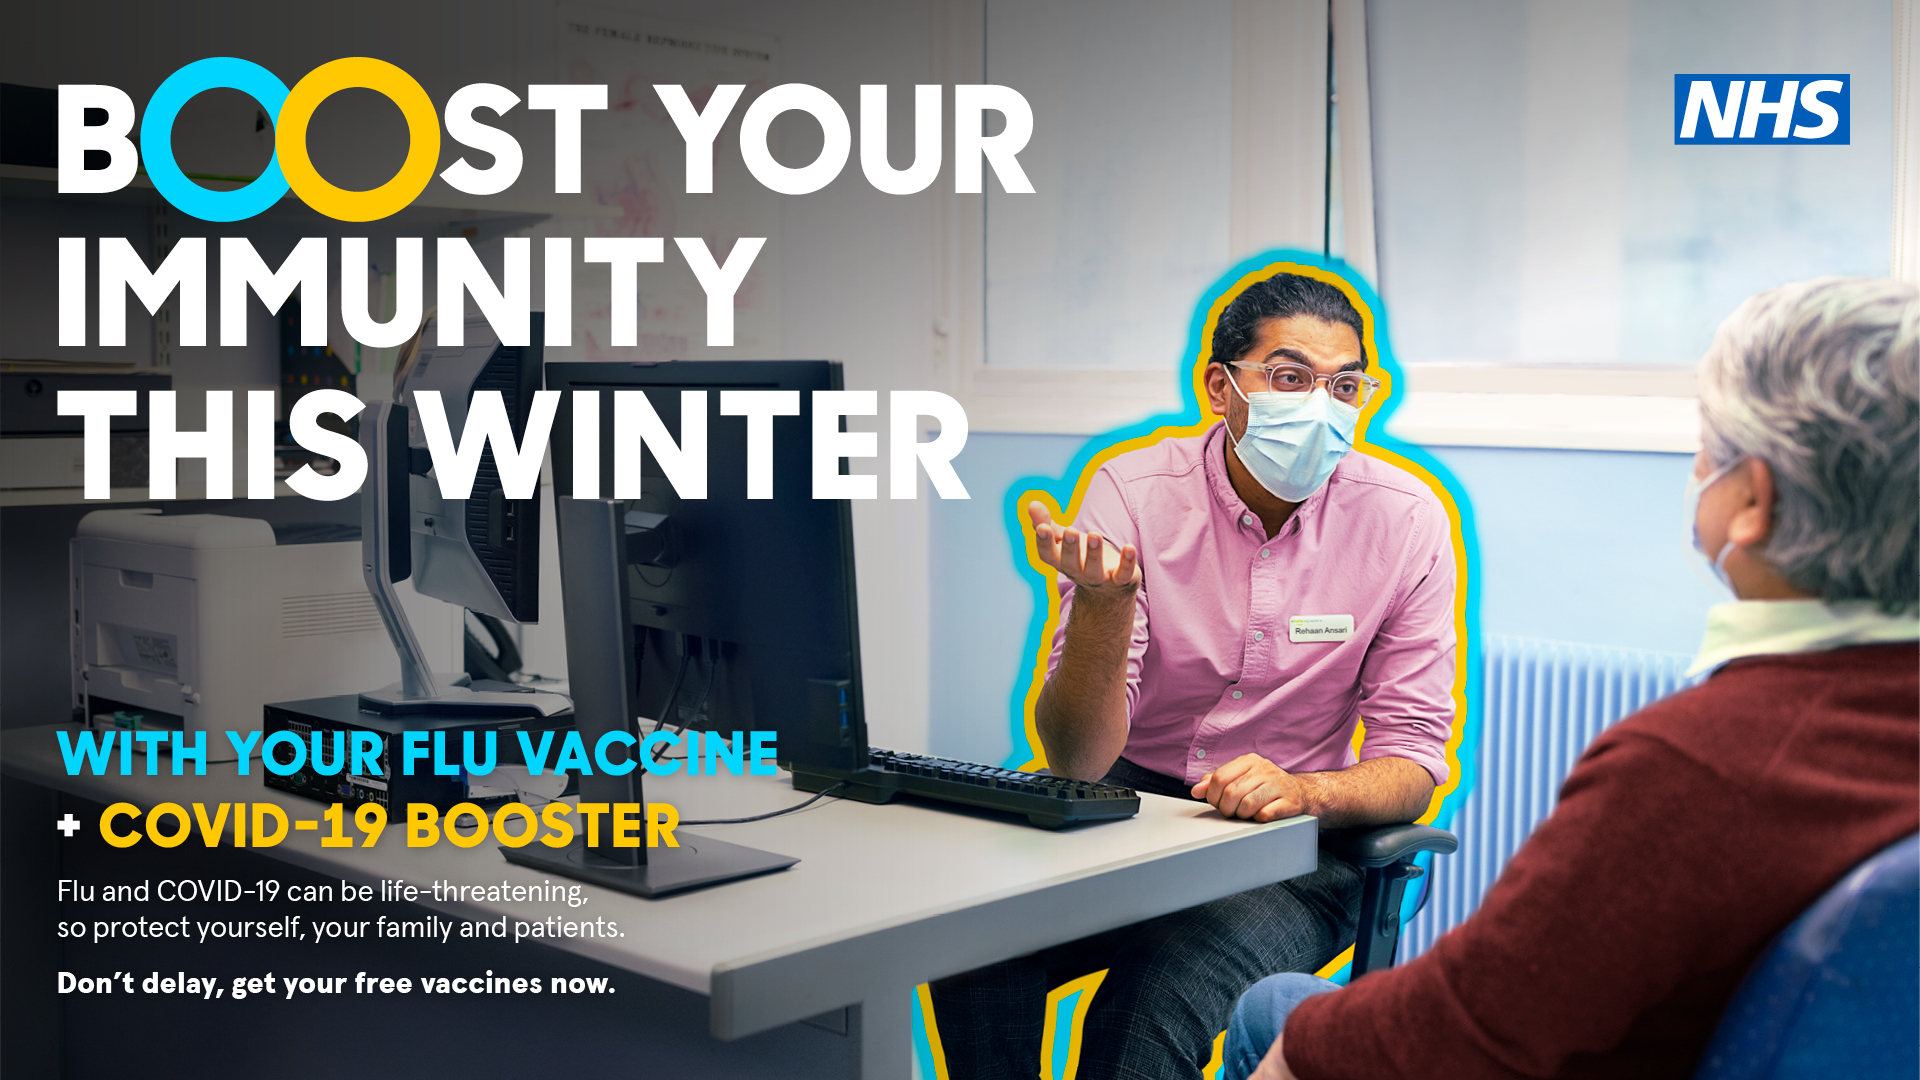 Residents urged to take up flu and COVID-19 vaccines to boost their immunity this winter